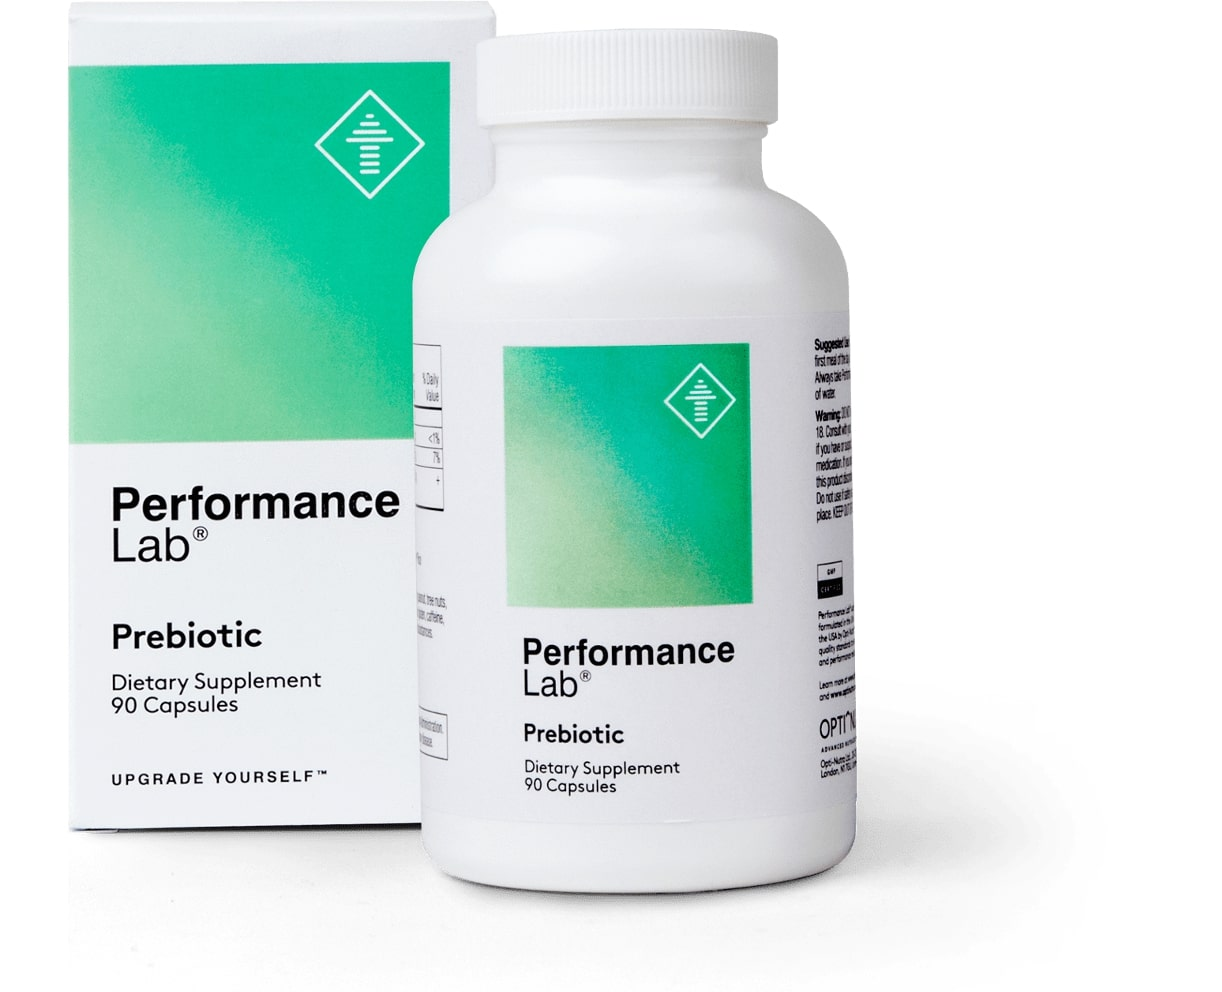 Performance Lab Prebiotic Review (2019)